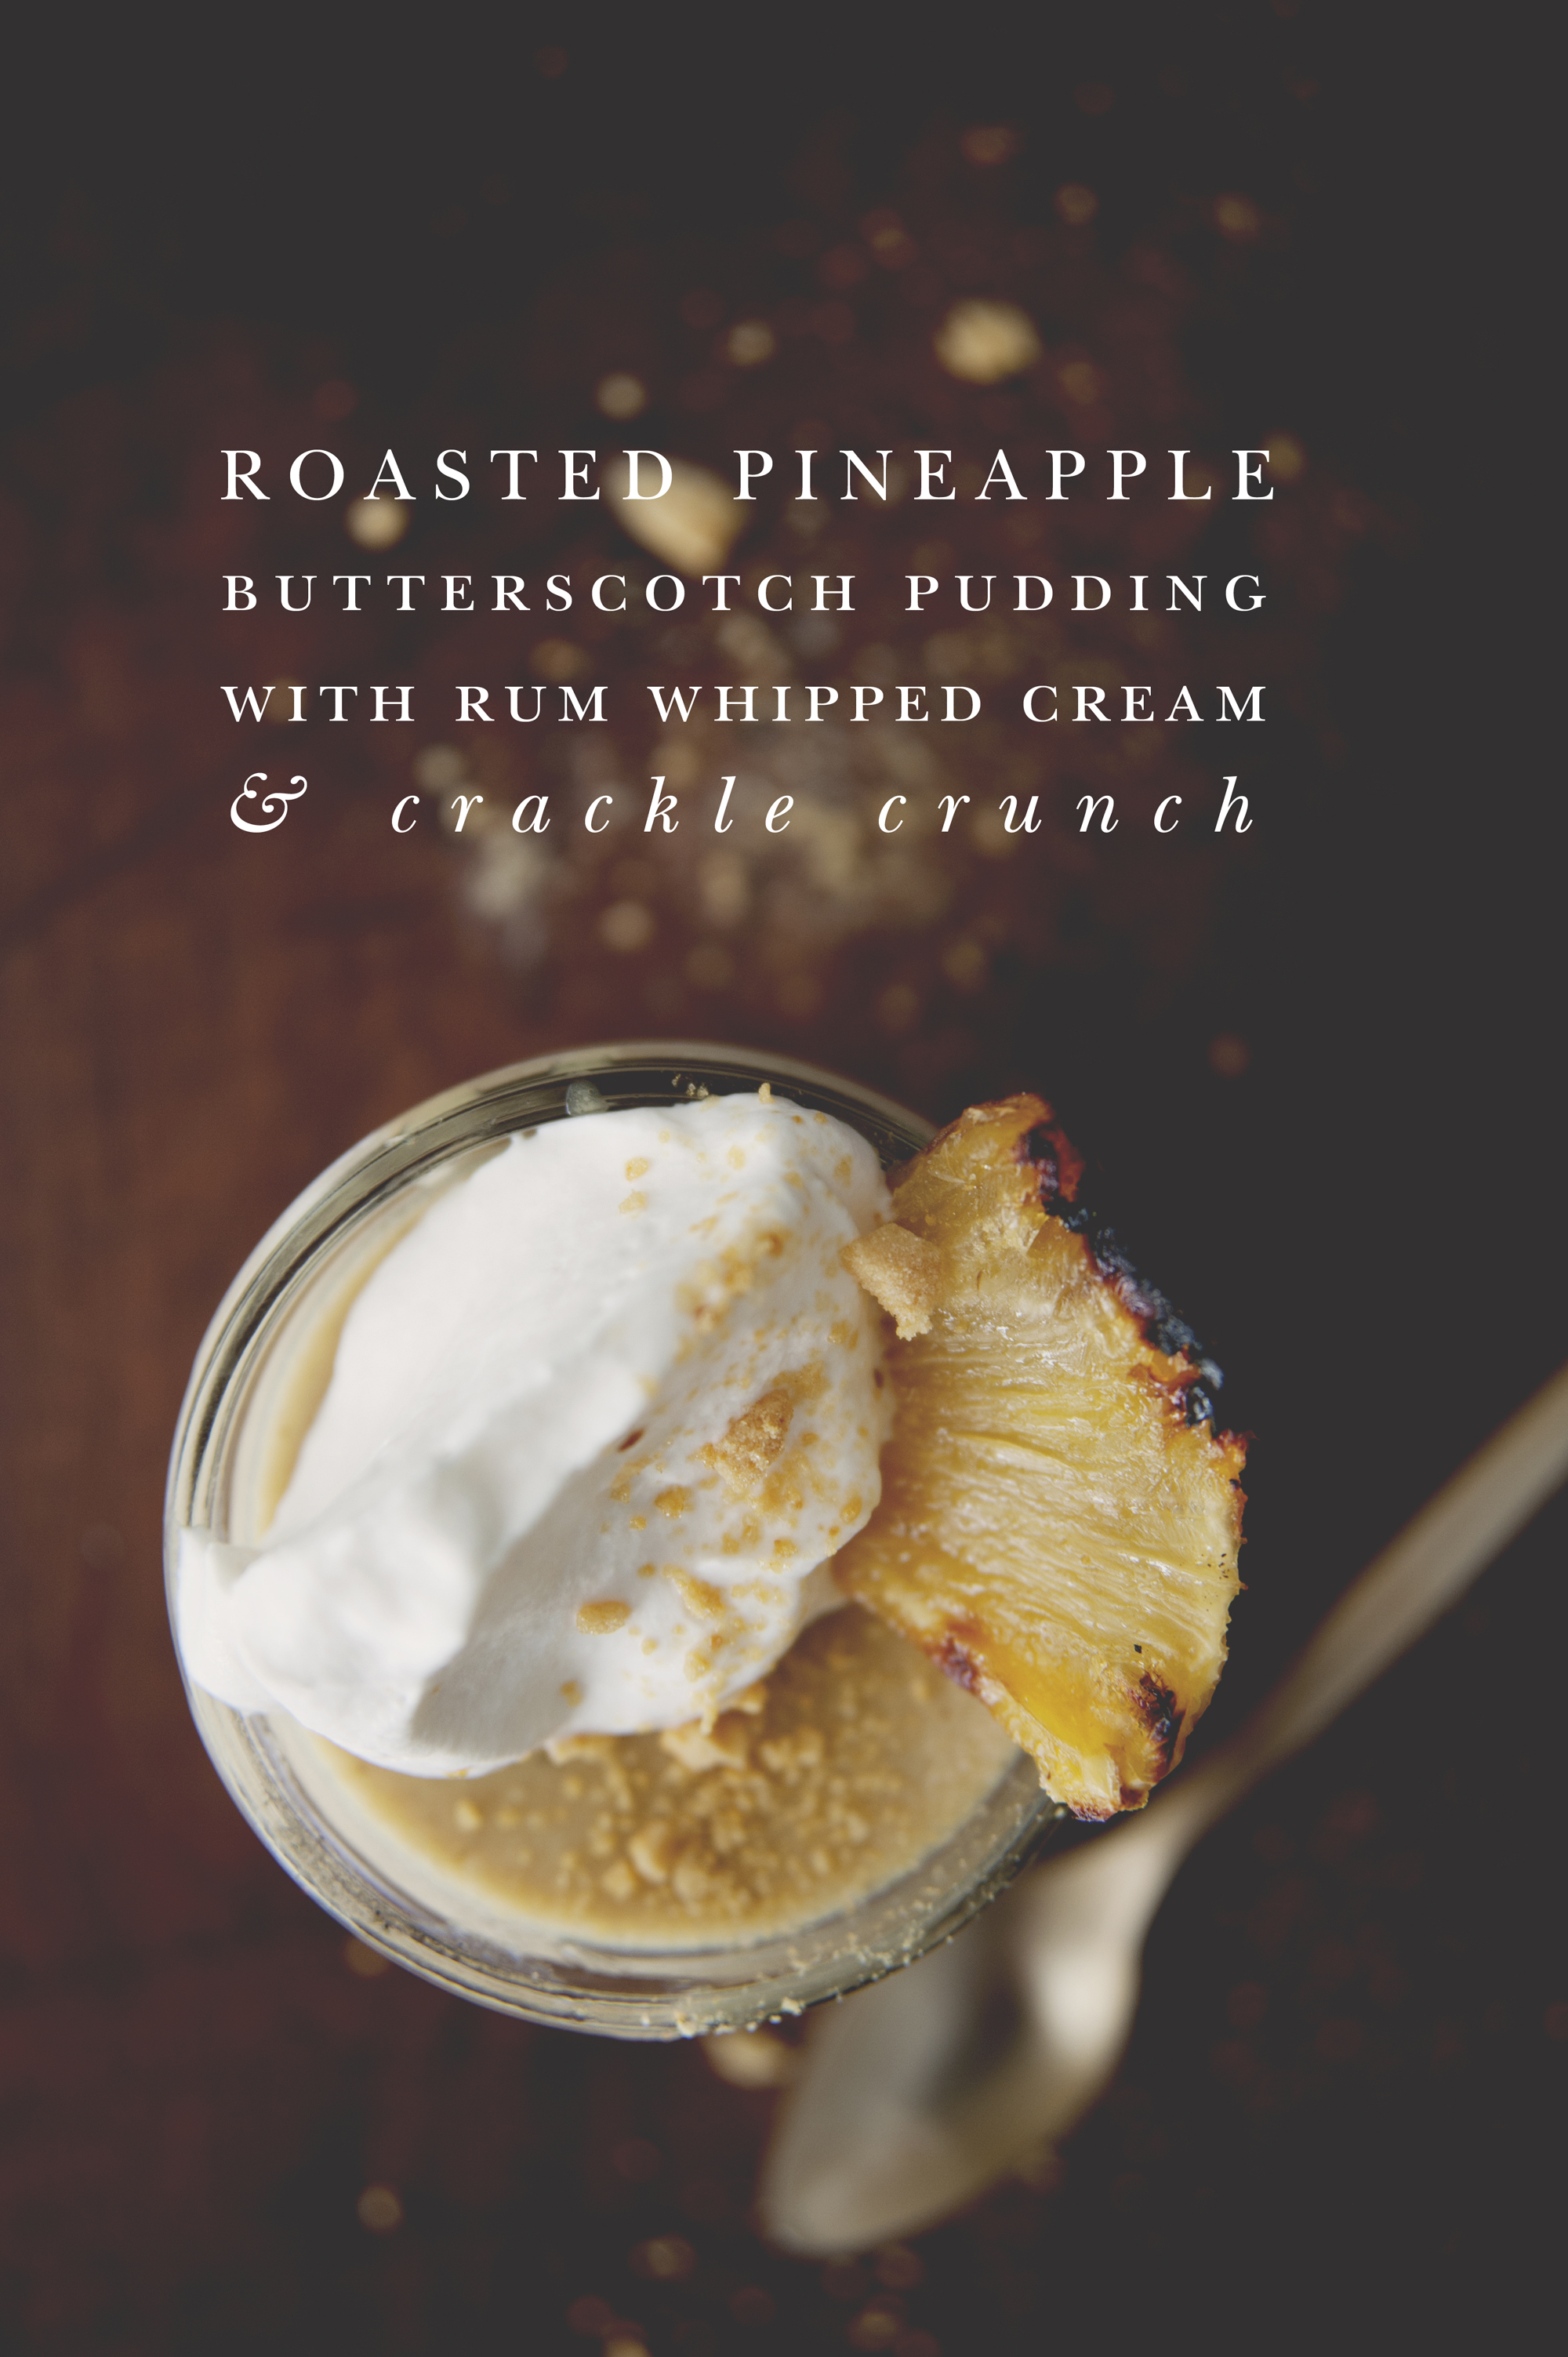 ROASTED PINEAPPLE BUTTERSCOTCH PUDDING WITH RUM WHIPPED CREAM ...